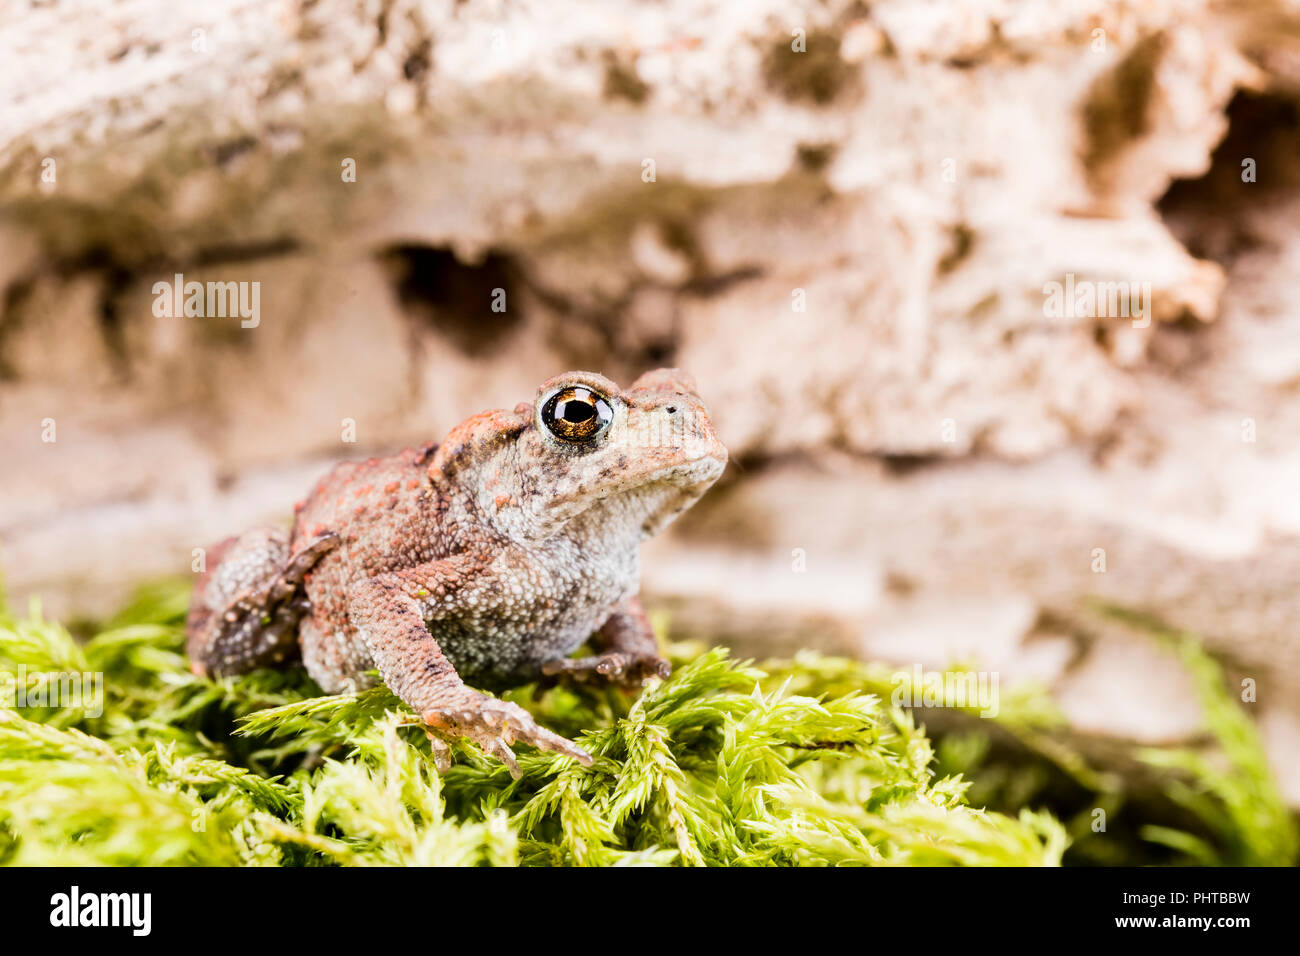 Common toad in late summer/early autumn in mid Wales - Stock Image